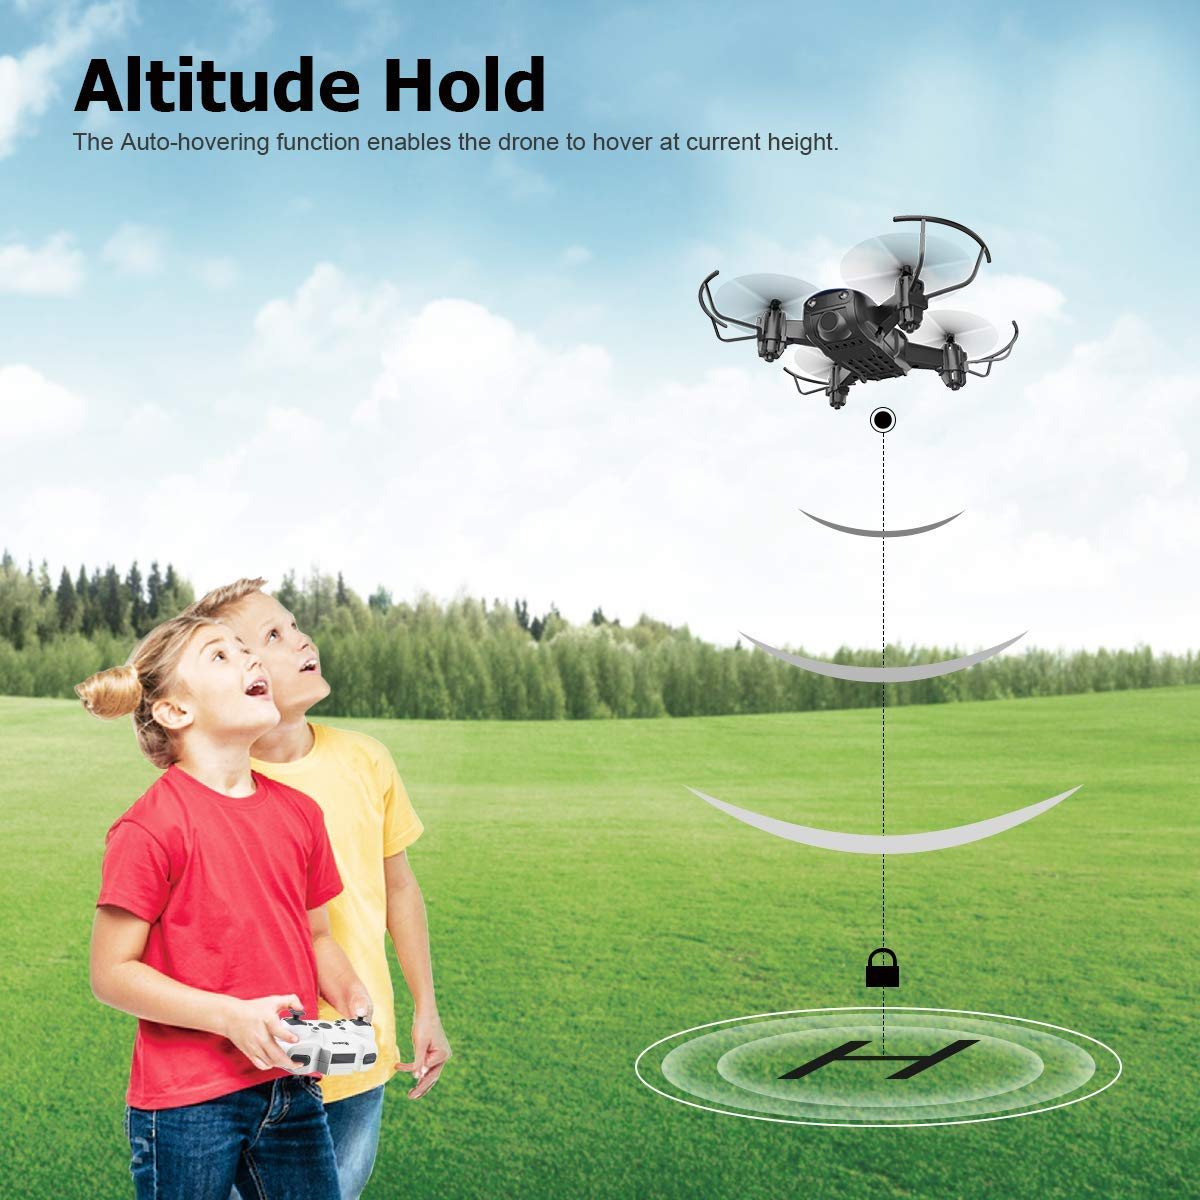 EACHINE E61H Altitude Hold